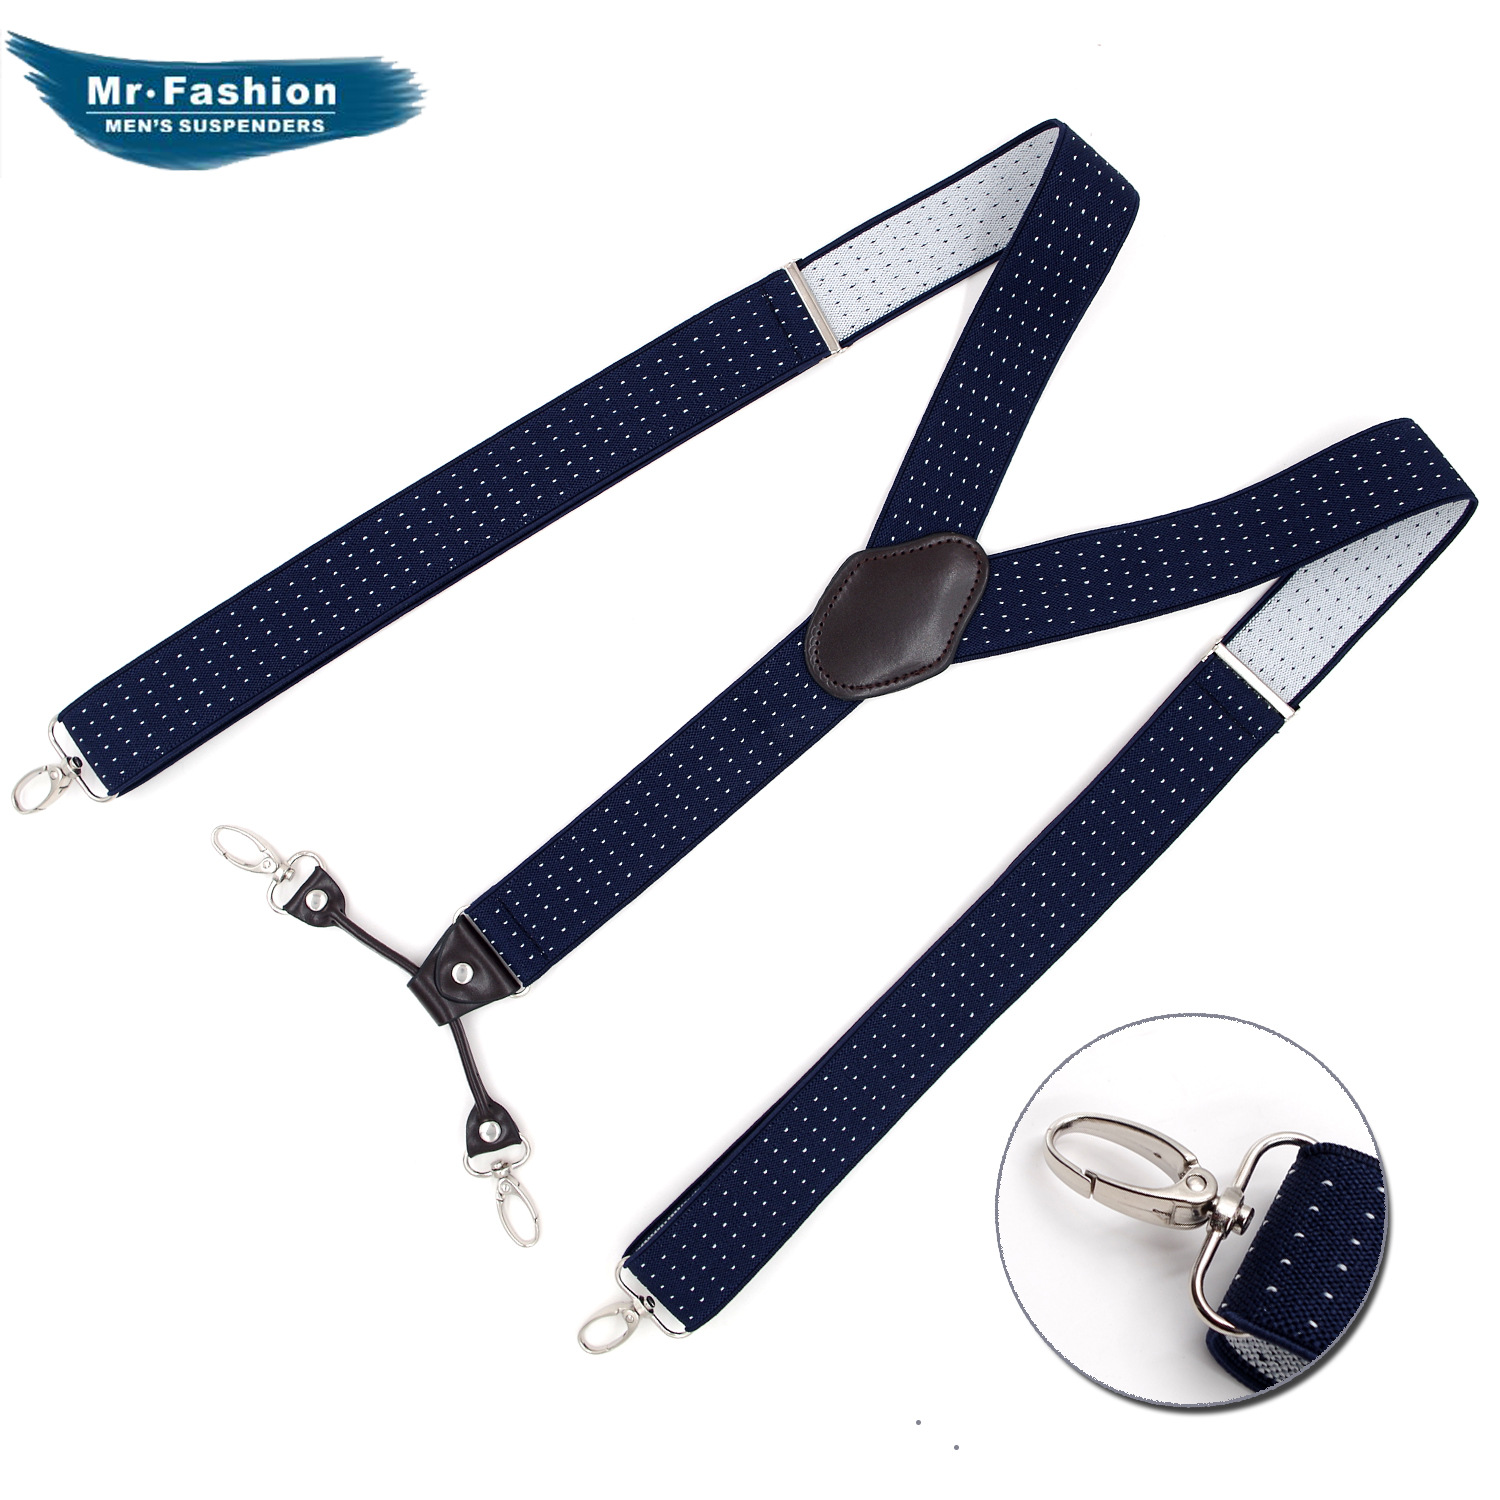 Brand Adult Hook Buckle Strap Fashion Men's 4-Clip Strap Jacquard Dark Blue Bei Dai Jia